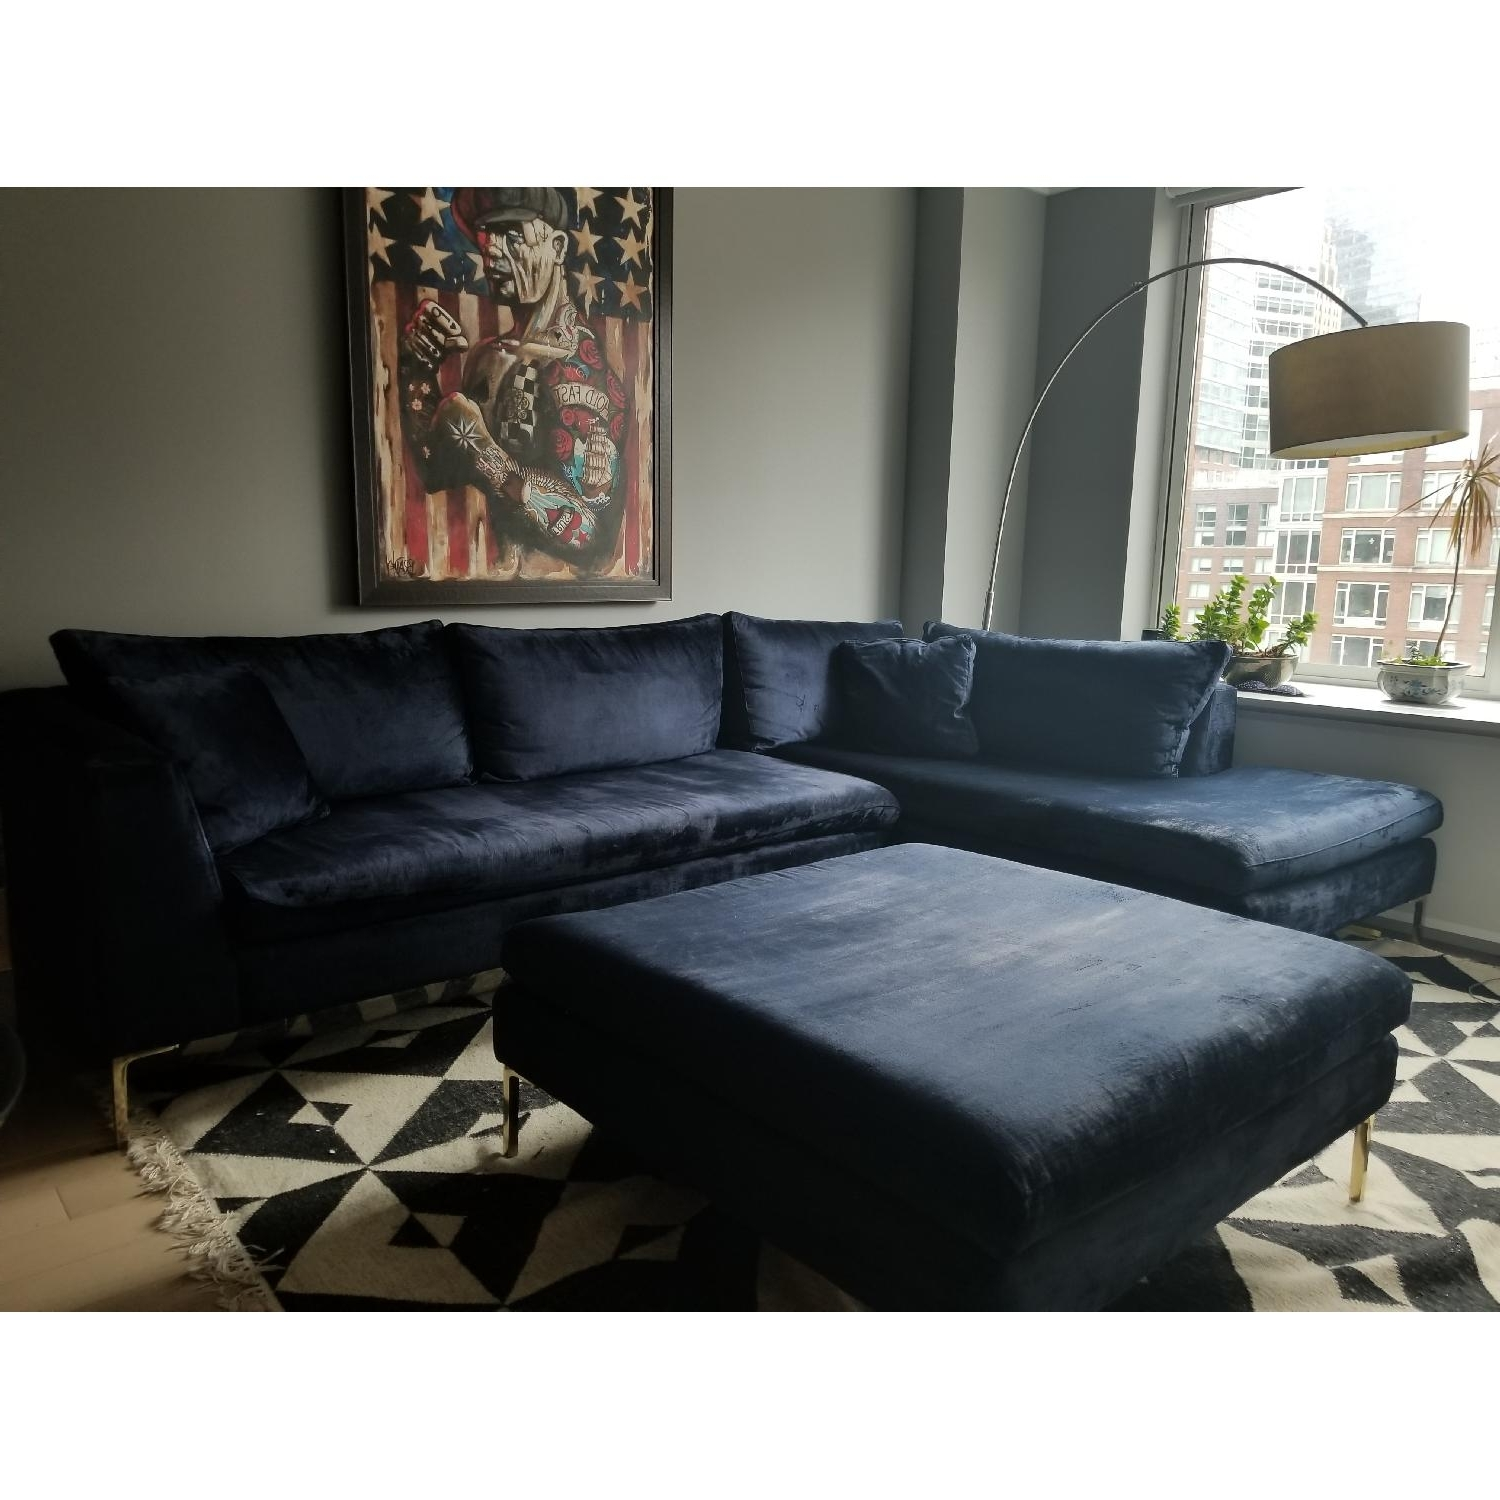 Phenomenal Displaying Gallery Of Velvet Sectional Sofas View 16 Of 20 Pdpeps Interior Chair Design Pdpepsorg